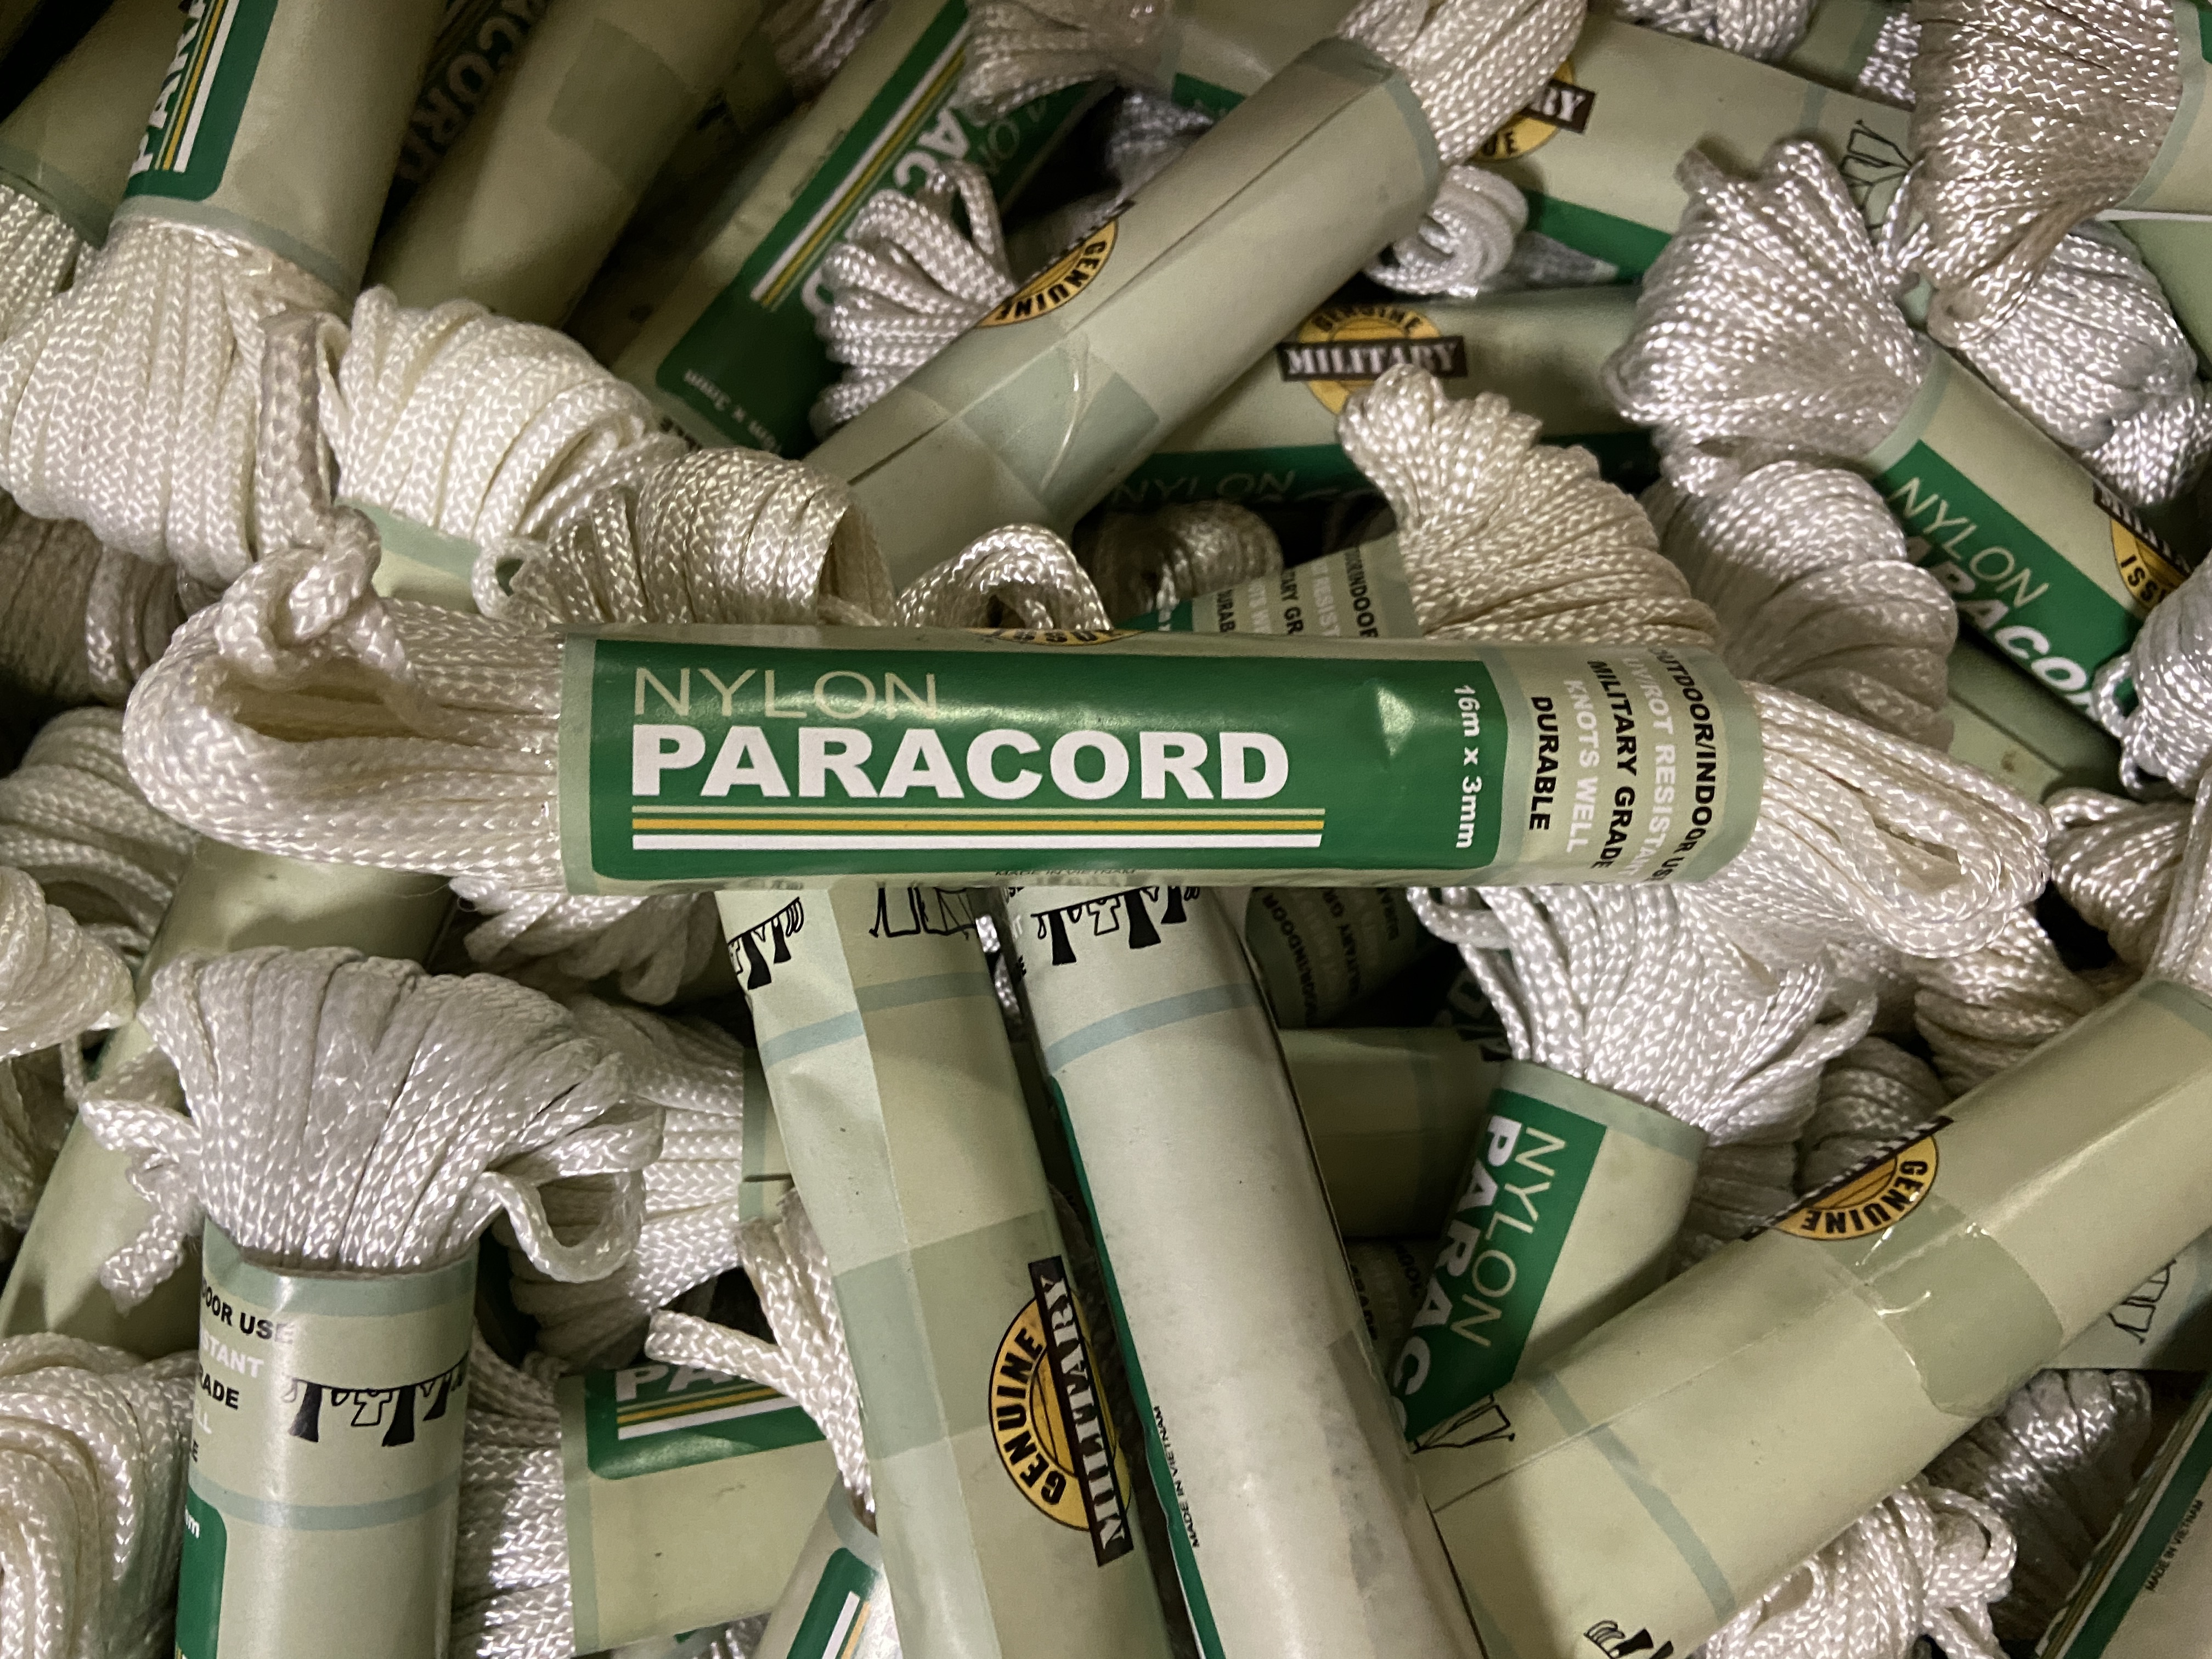 20,000+ units of Nylon Utility Rope Paracord Cord for indoor/outdoor use, Retail Value $33k+ - Image 9 of 9